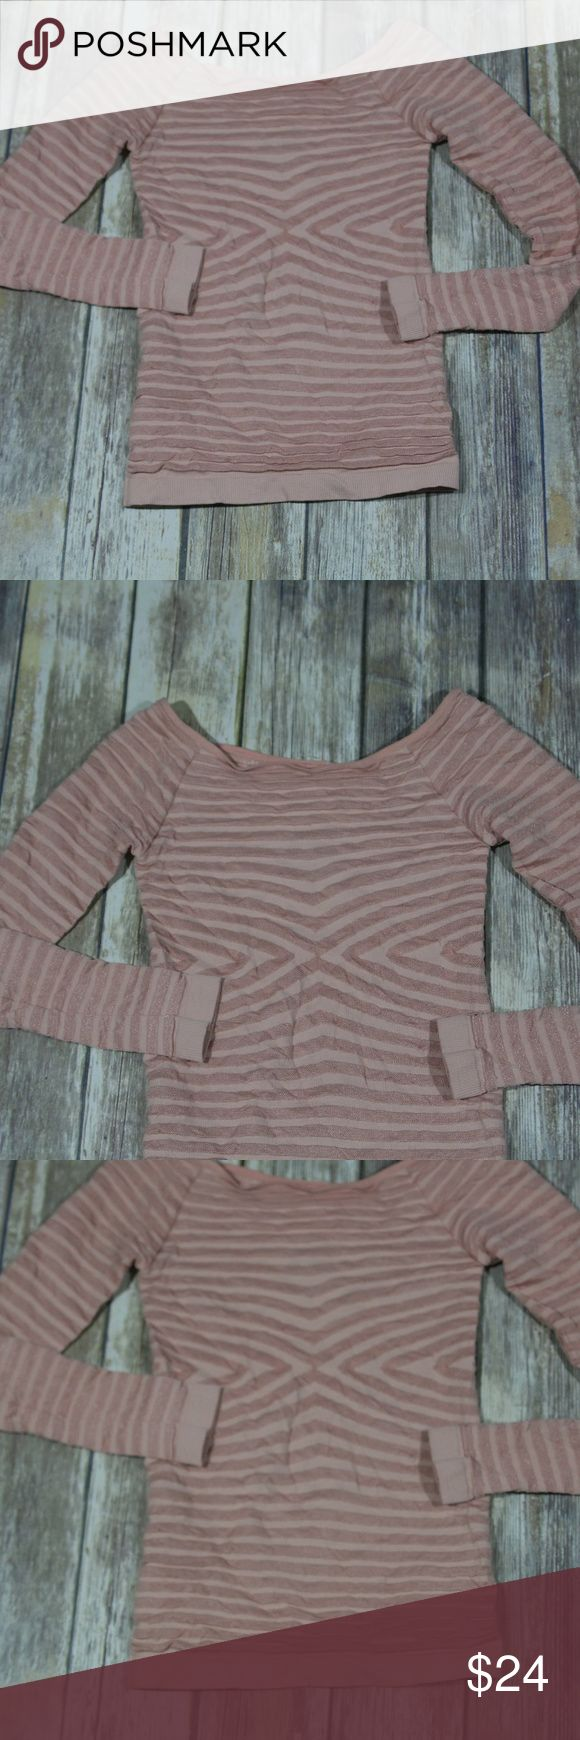 """Free People Seamless Optical Off The Shoulder Top Free People Women's Seamless Optical Stripe Off the Shoulder Top.  Size Medium/Large.  Light pink (rosette).  Raised stripes have a metallic sheen.  92% nylon, 8% spandex.  Machine wash.  Item appears to be new with tags, retailing at $48.  No flaws noted.  Style F734F191.  No trades, offers welcome.  Measures 12"""" pit to pit, 19"""" top of shirt to hem. Free People Tops Tees - Long Sleeve"""